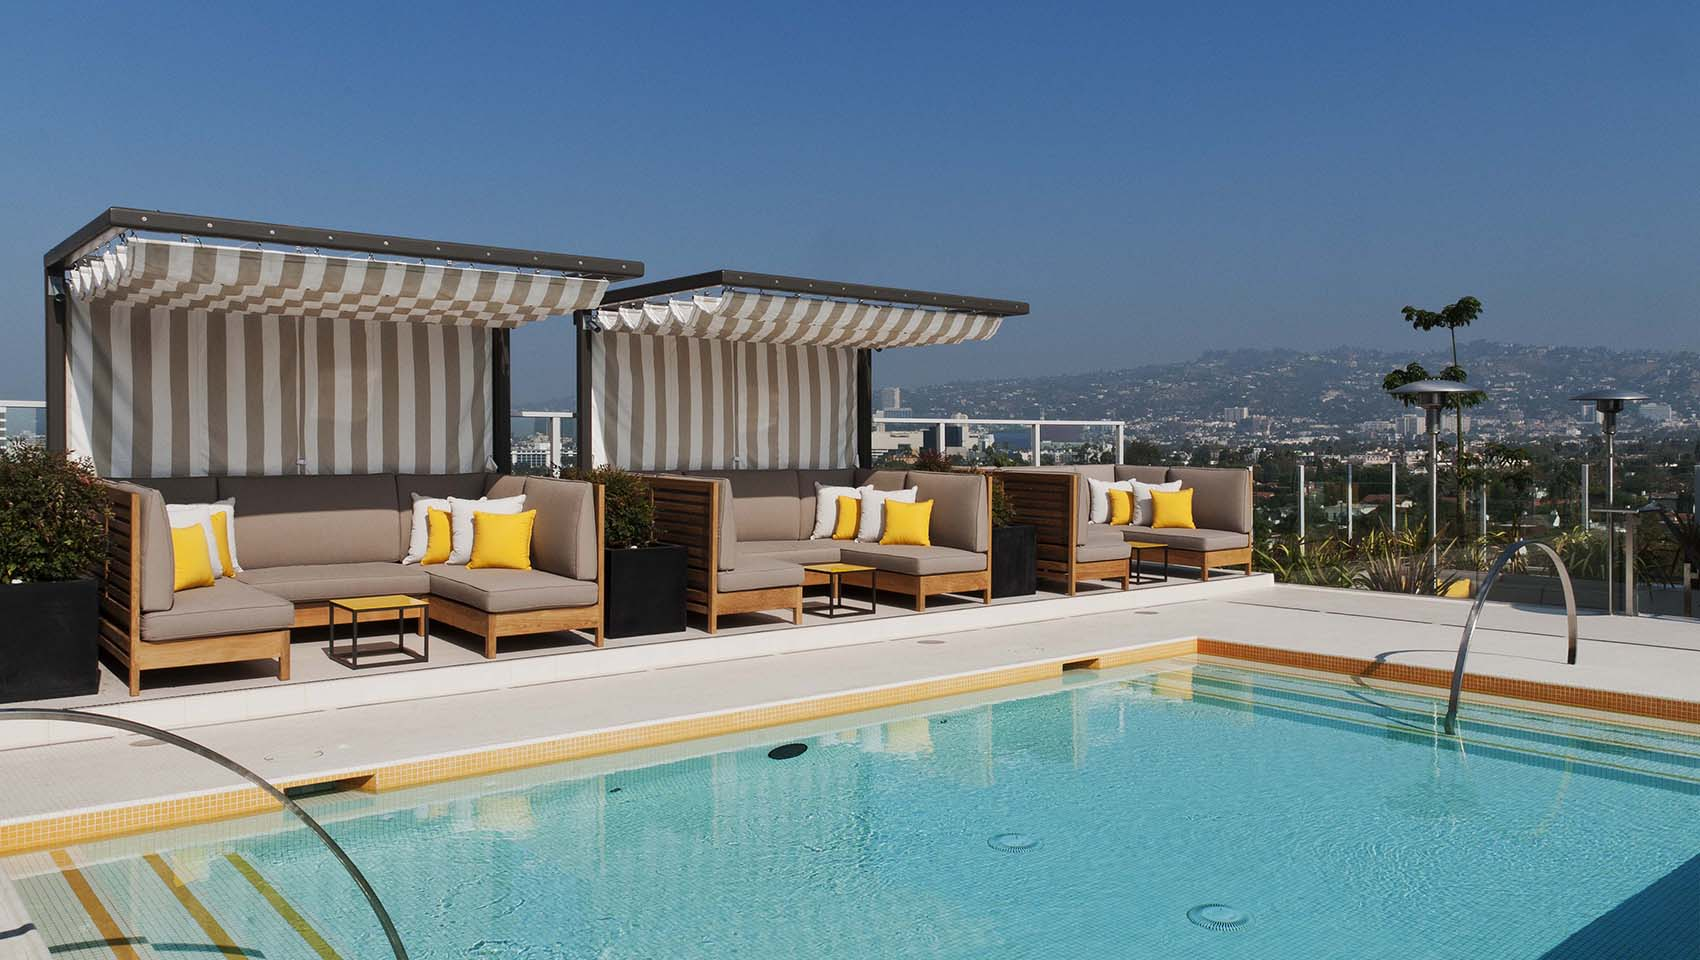 Kimpton Hotel Wilshire roof top pool deck